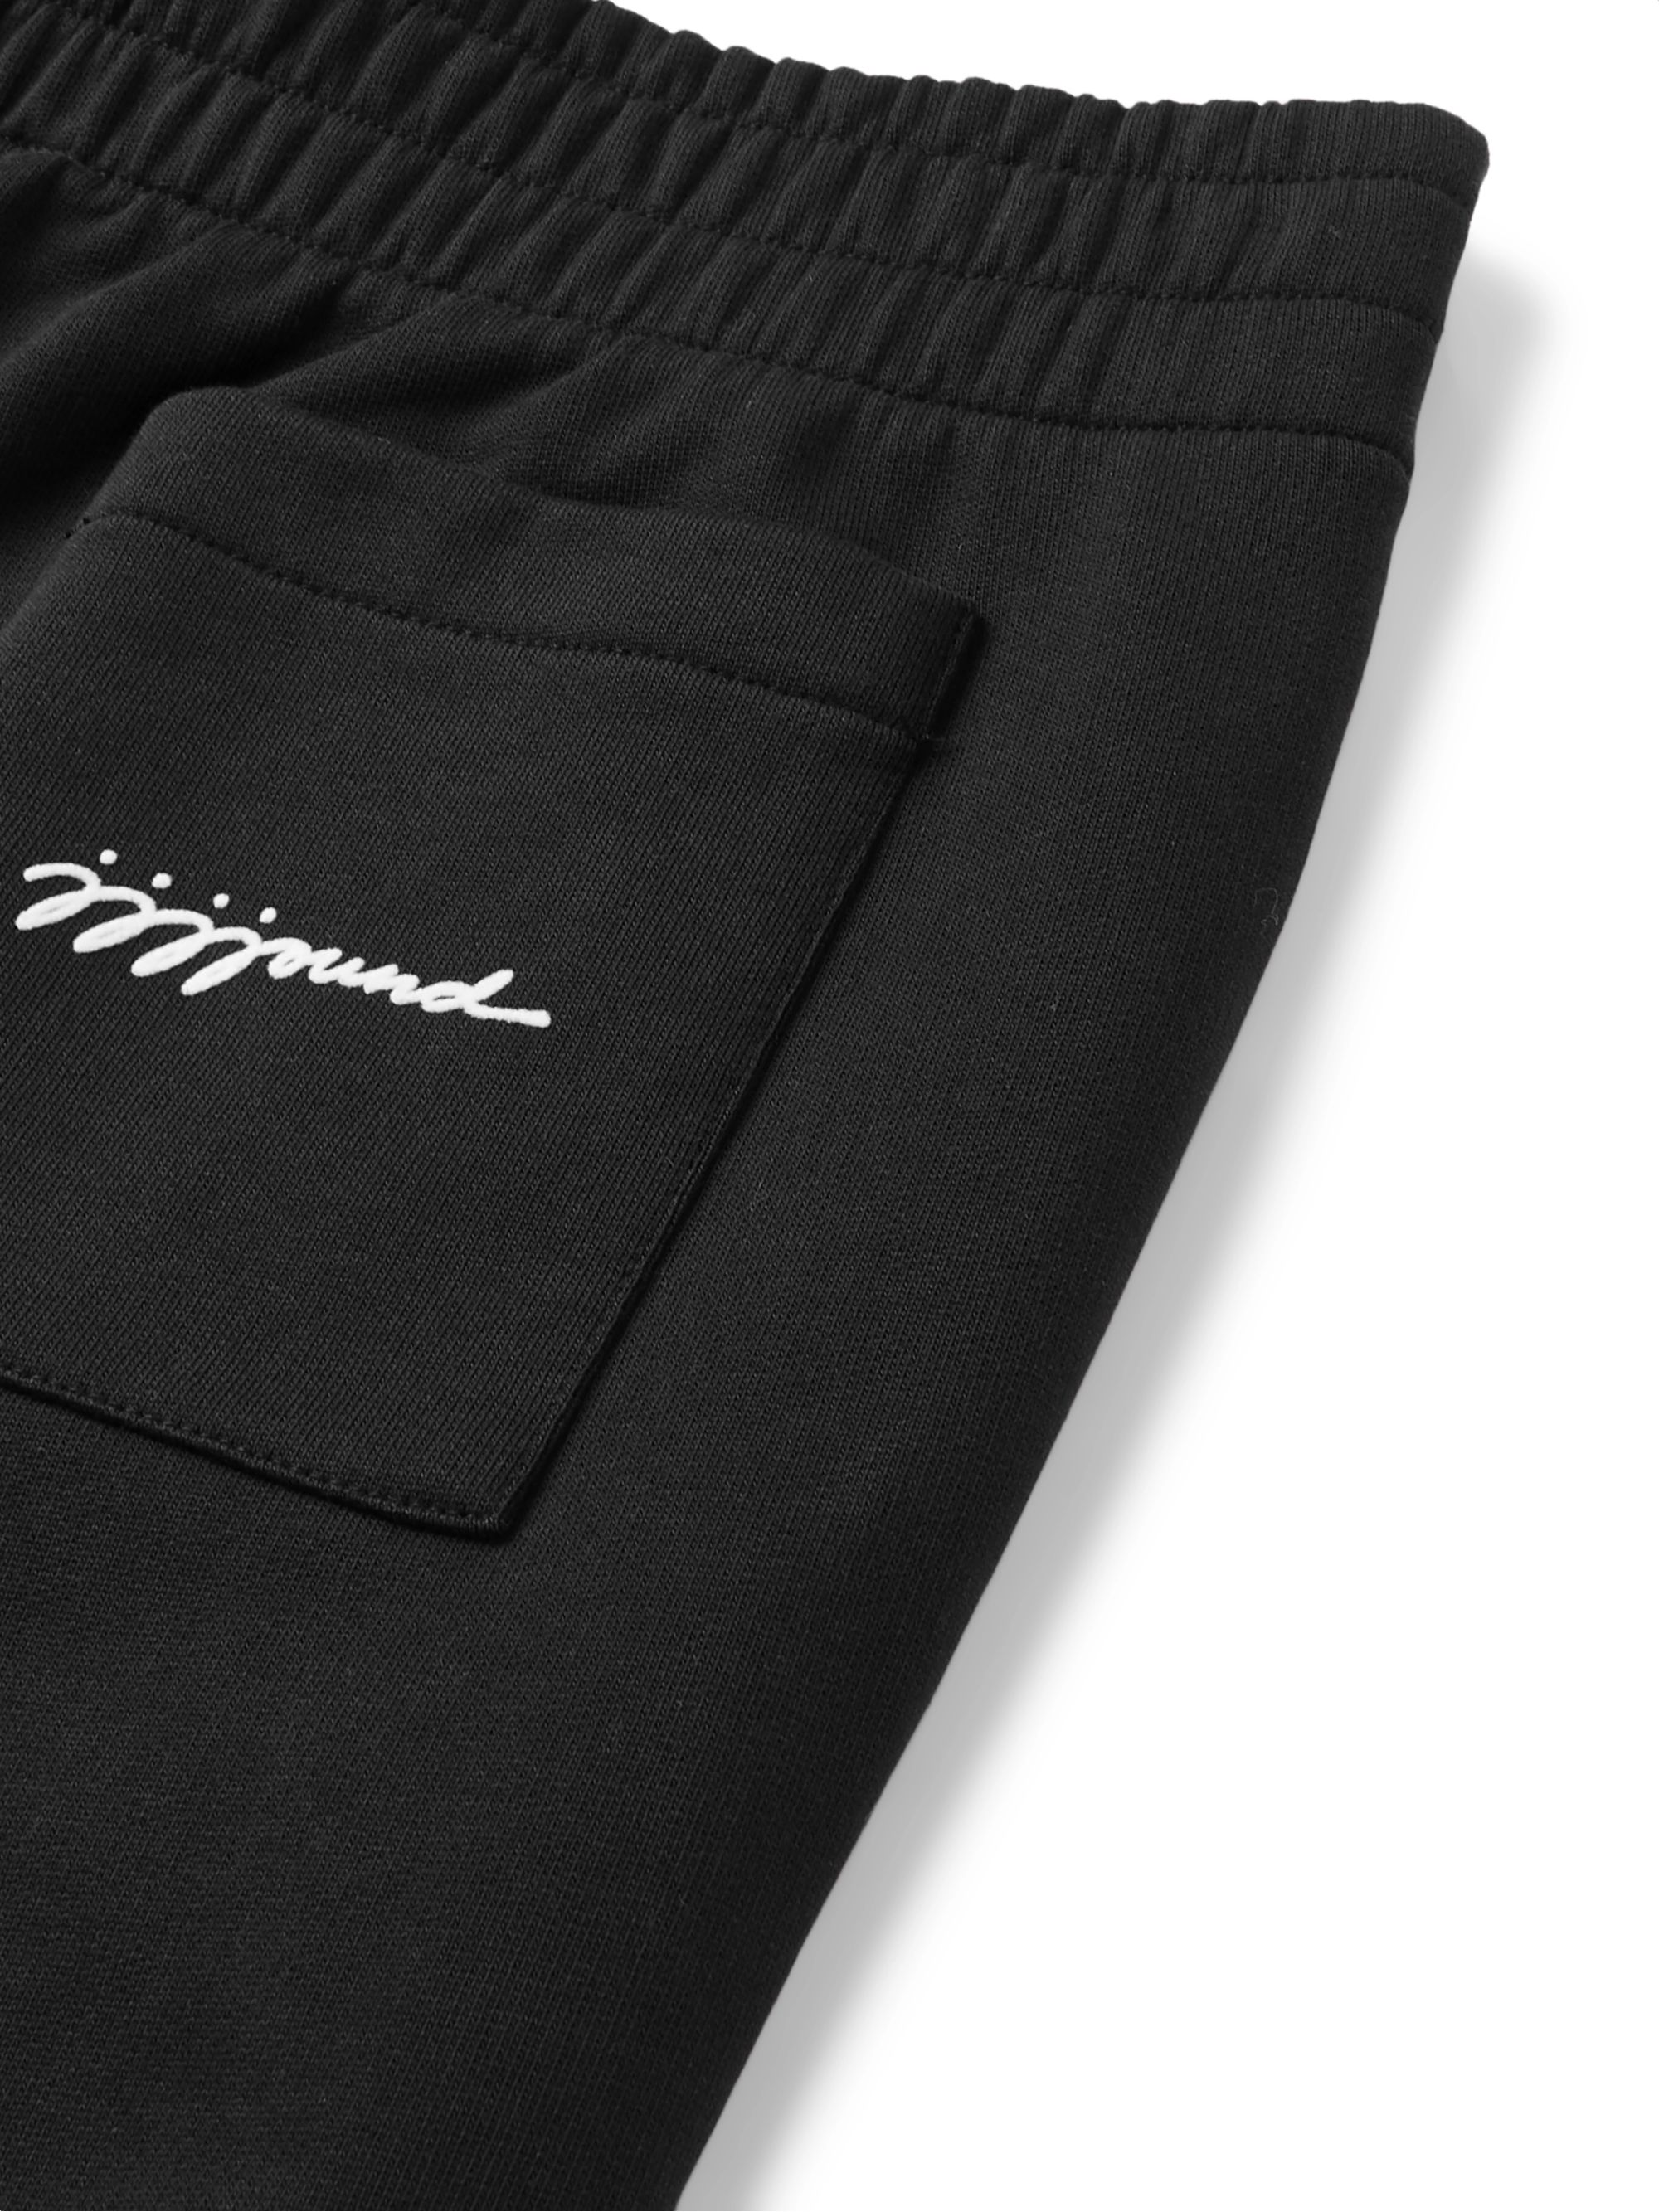 A.P.C. + JJJJound Justin Slim-Fit Logo-Detailed Loopback Cotton-Jersey Sweatpants